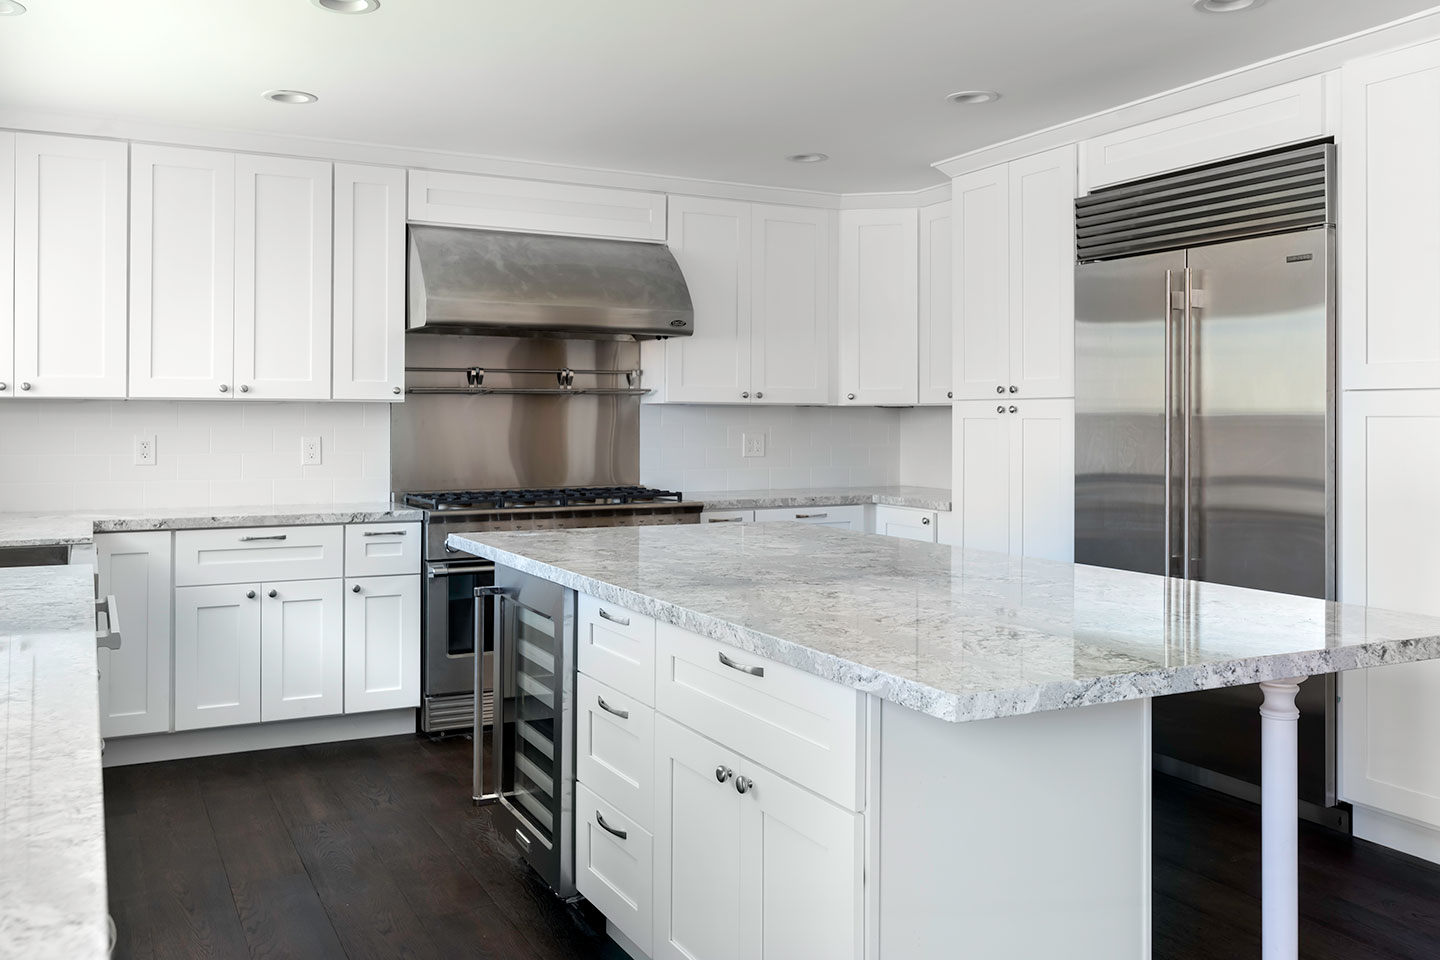 kitchen overview with wine cooler and fridge